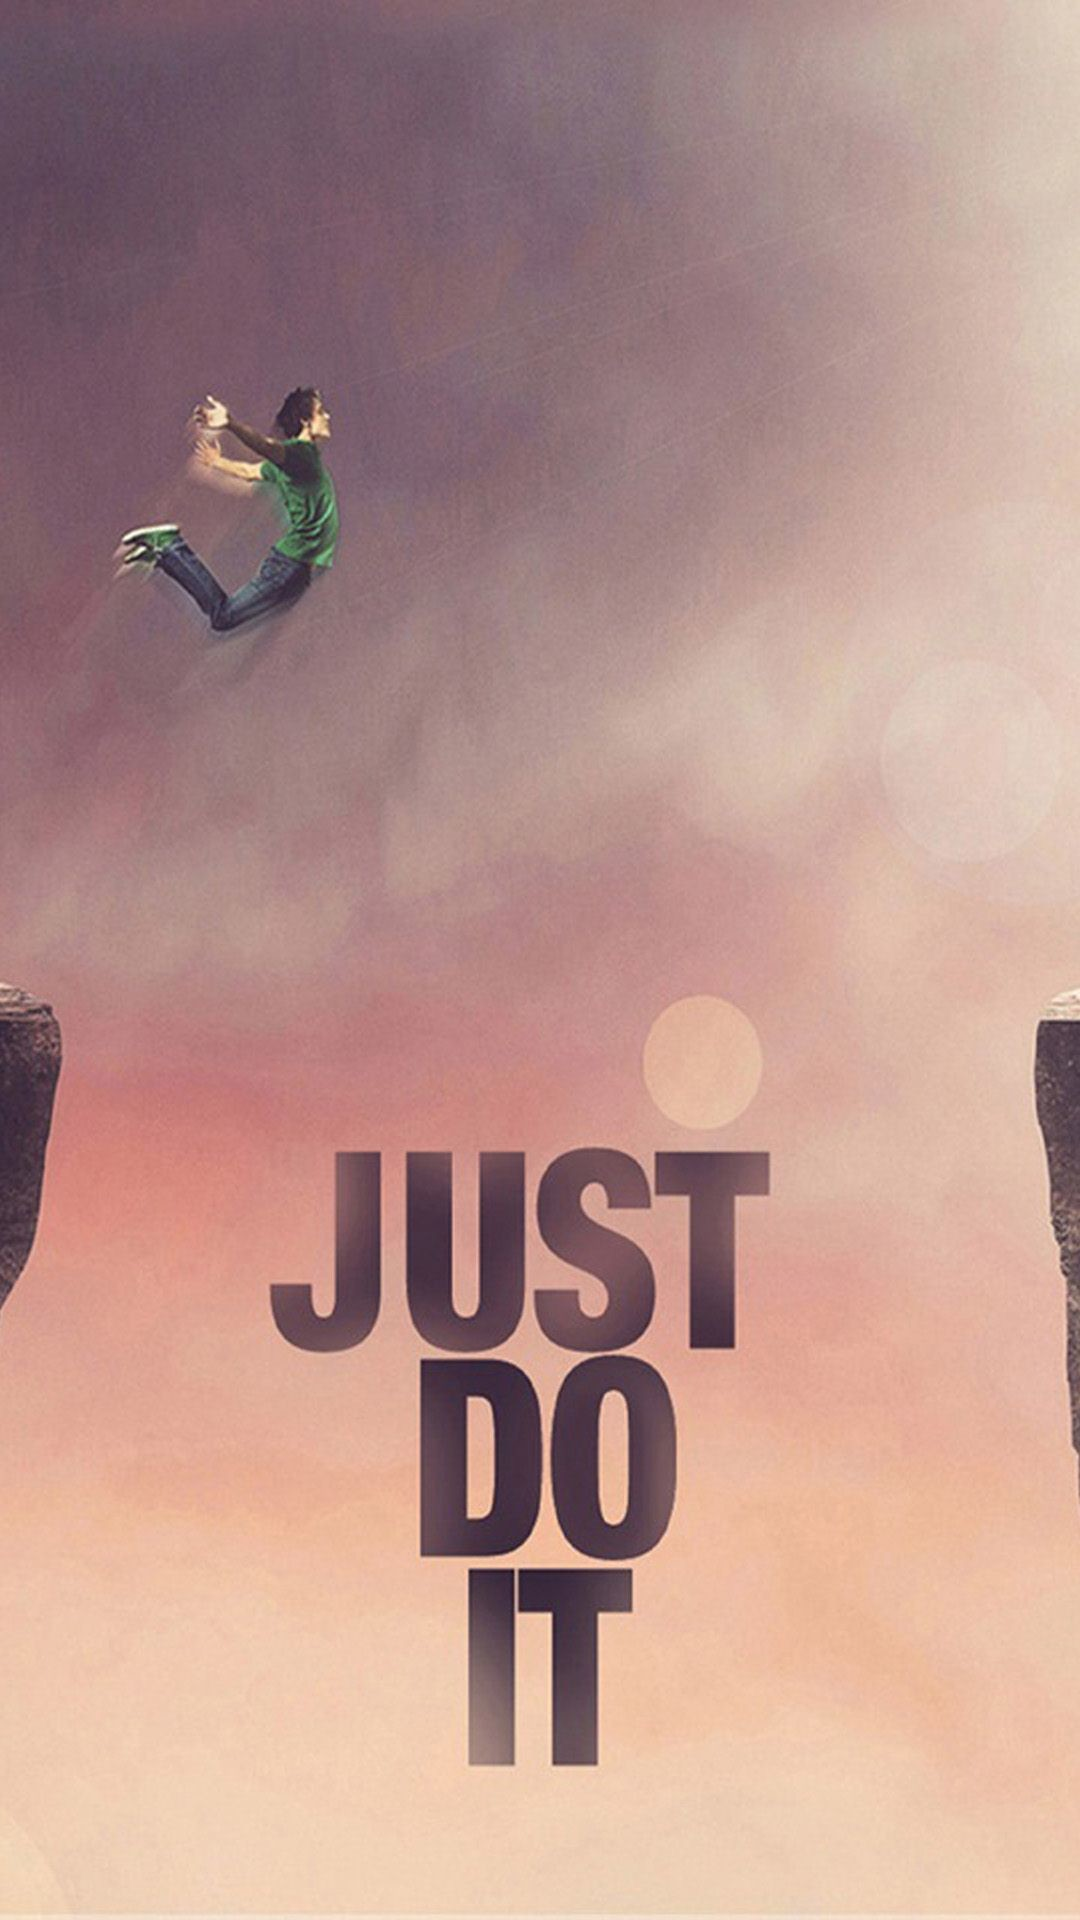 Download Free Nike Wallpaper for Iphone.